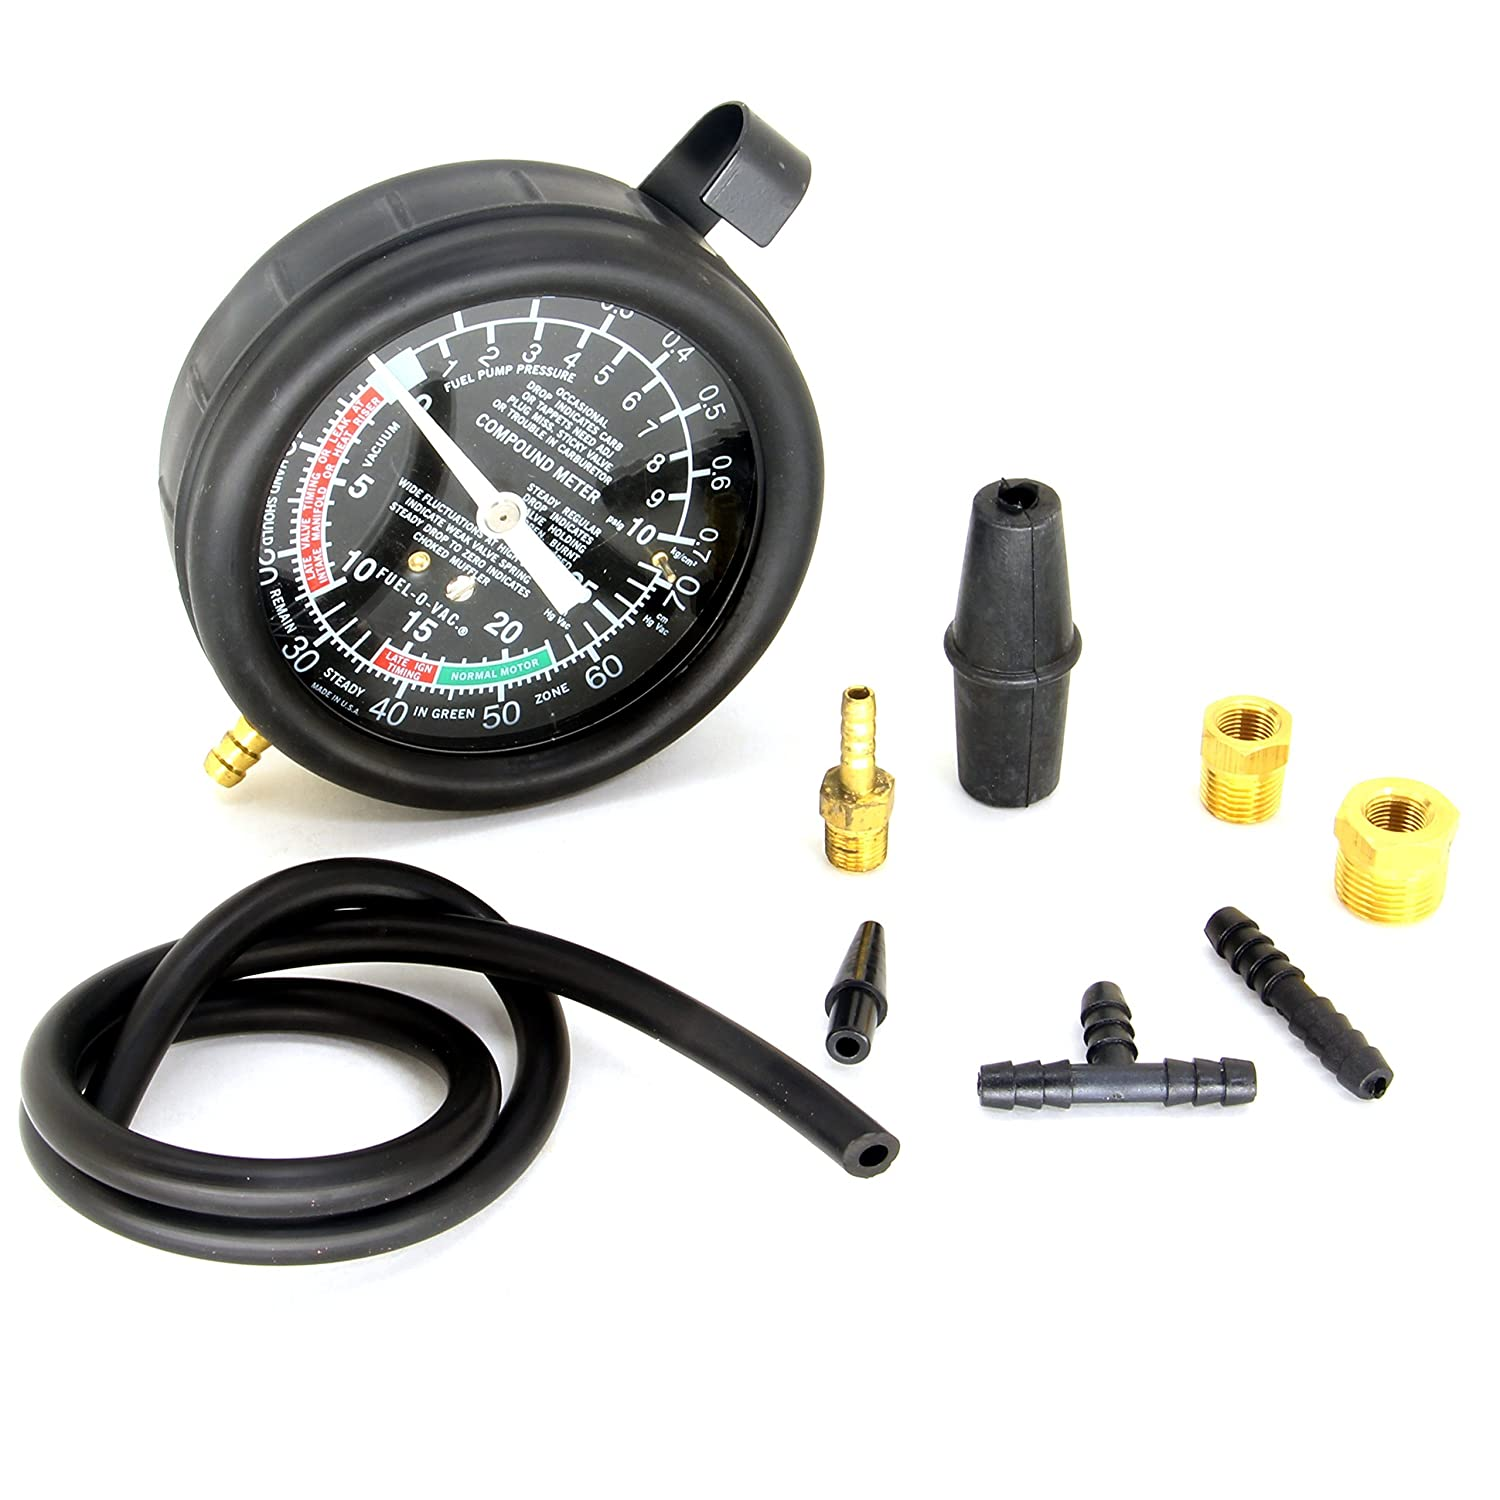 HFS R Carburetor Carb Valve Fuel Pump Pressure /& Vacuum Tester Gauge Test Kit Hardware Factory Store 11902